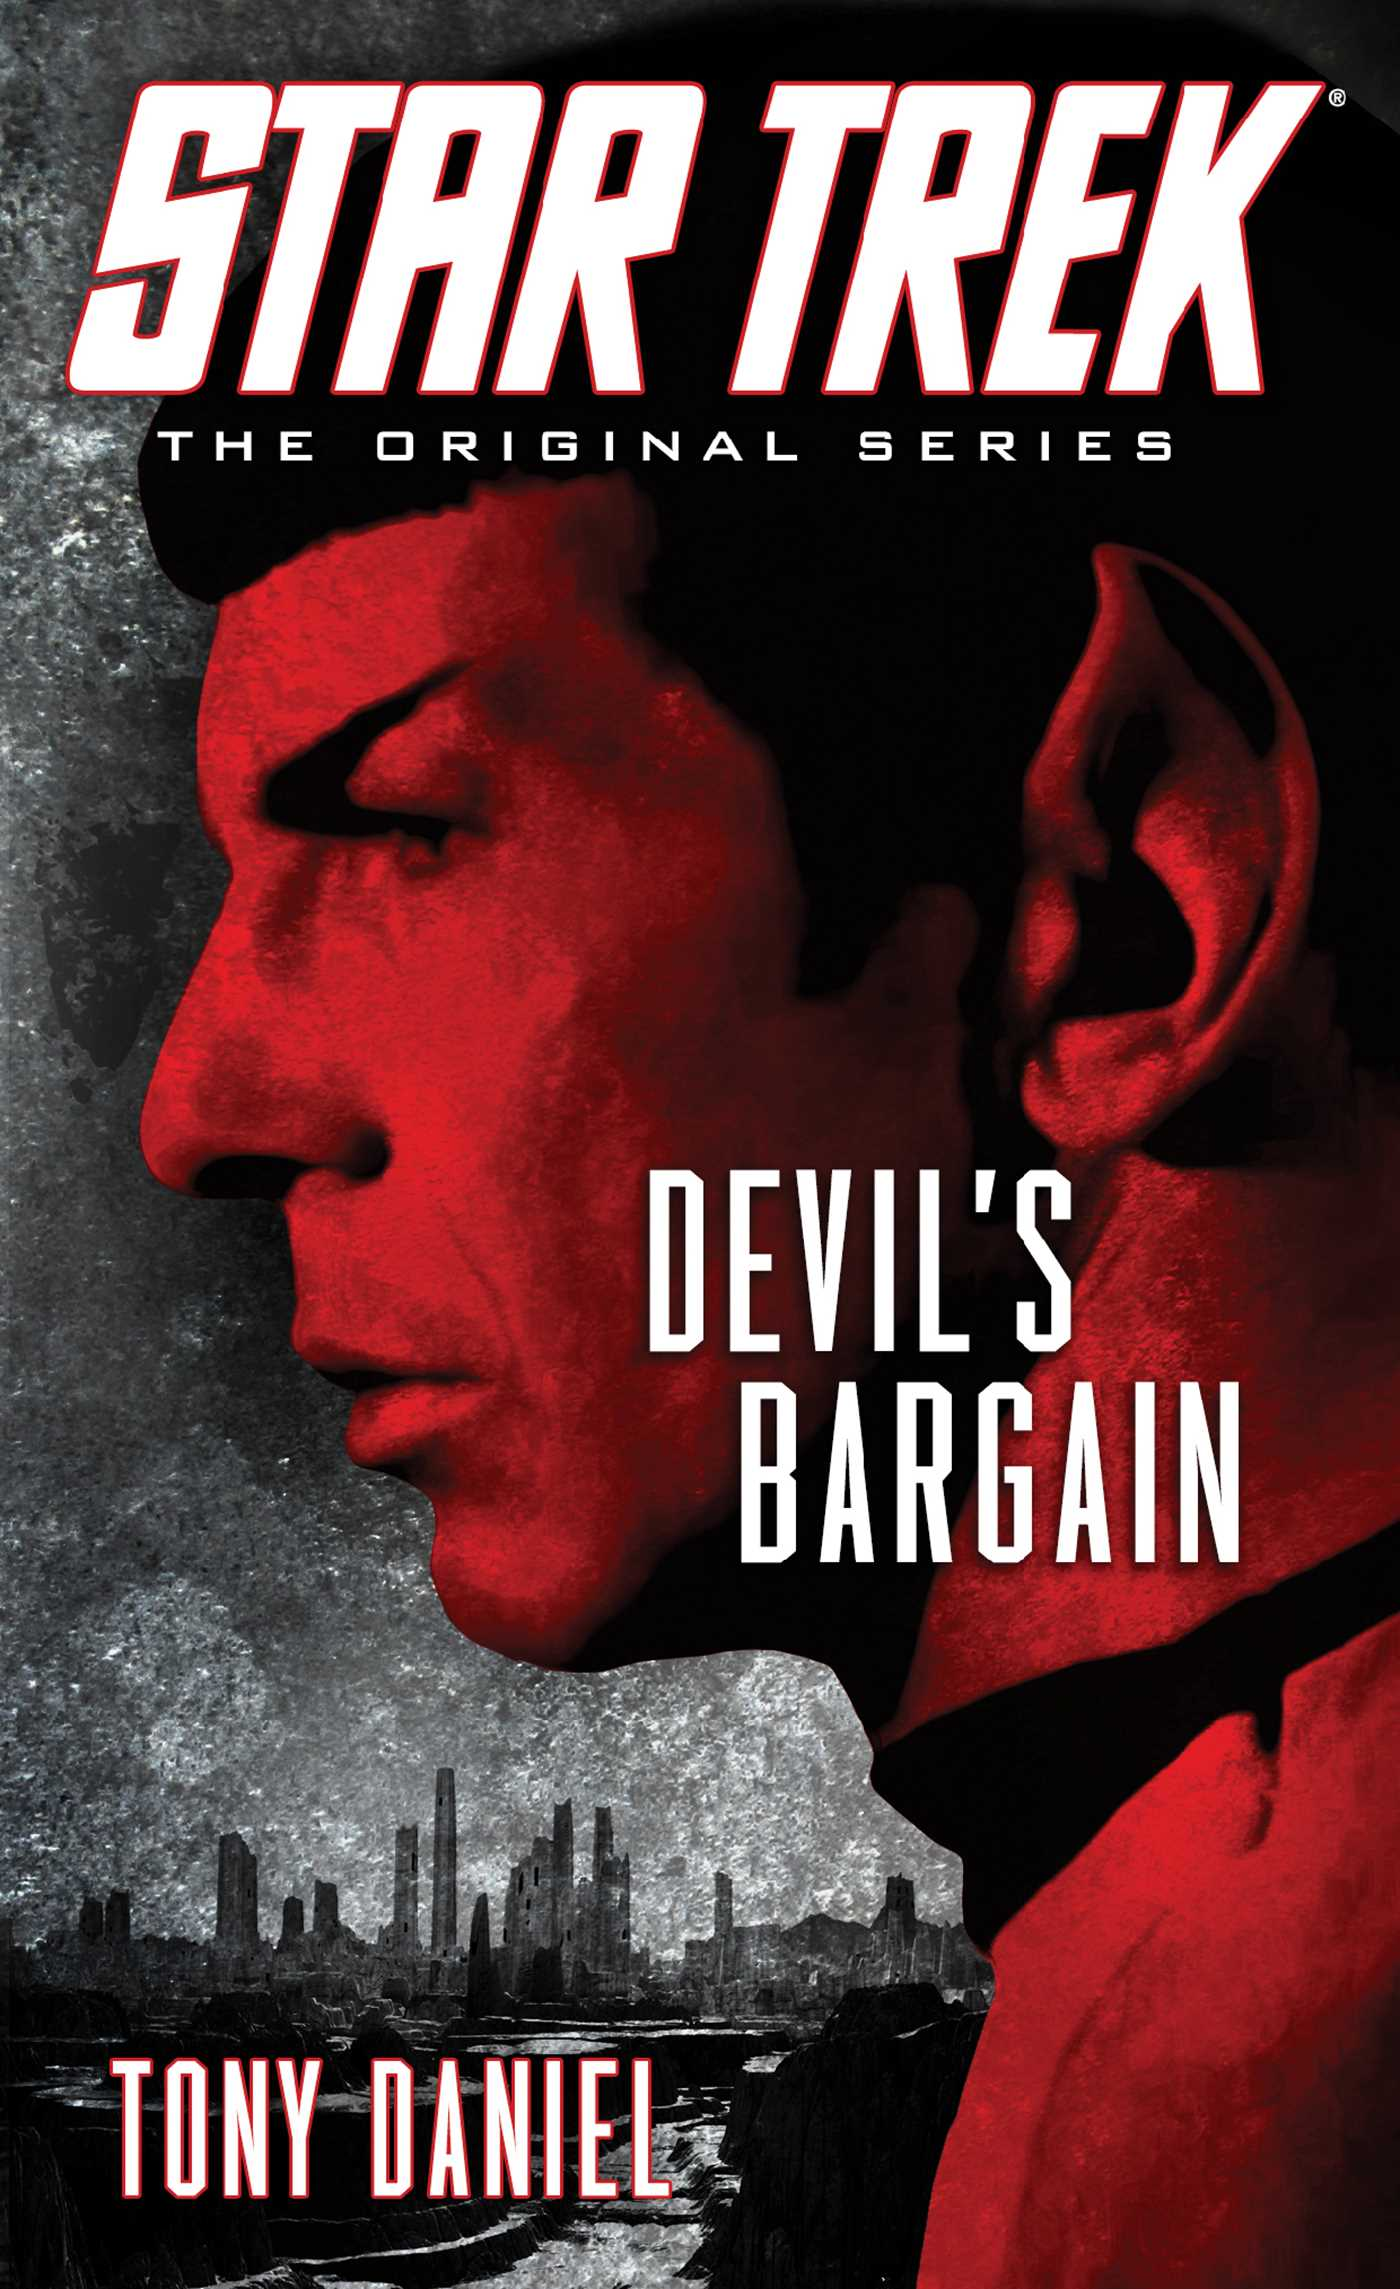 Star trek the original series devils bargain 9781476700496 hr